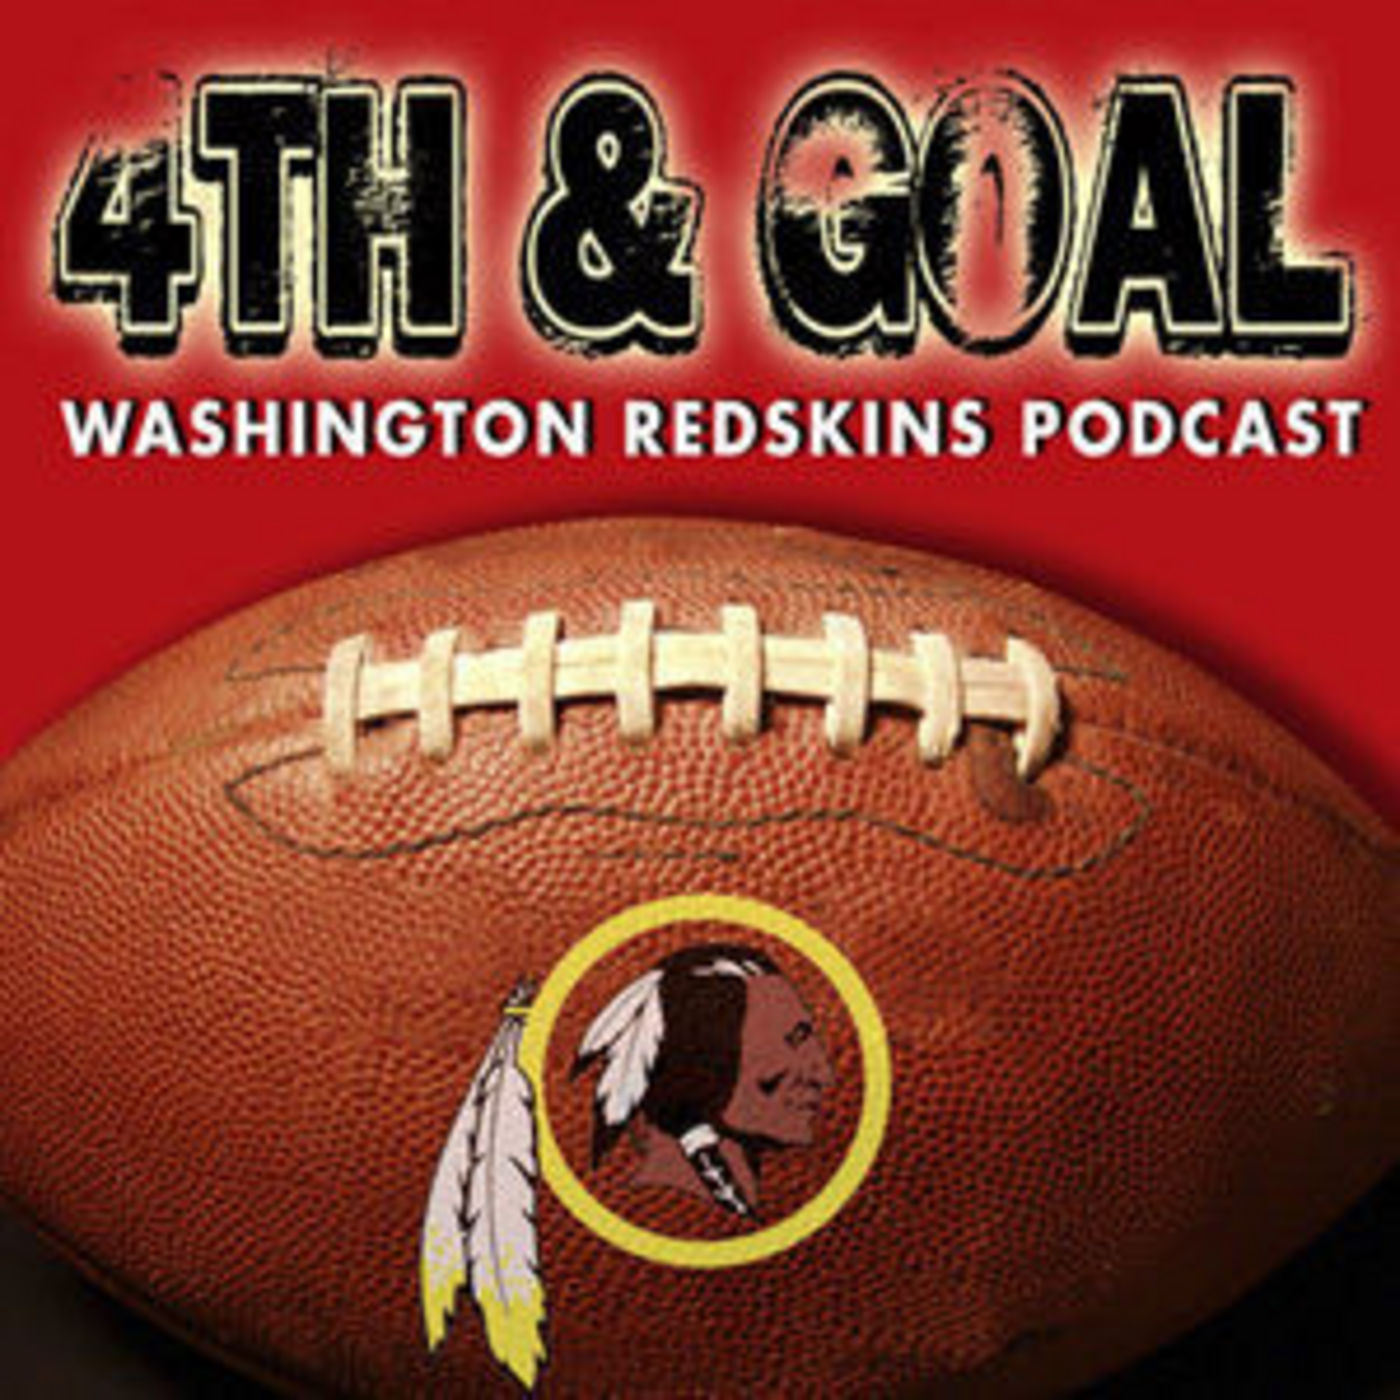 <![CDATA[TSS:Redskins 4th And Goal]]>